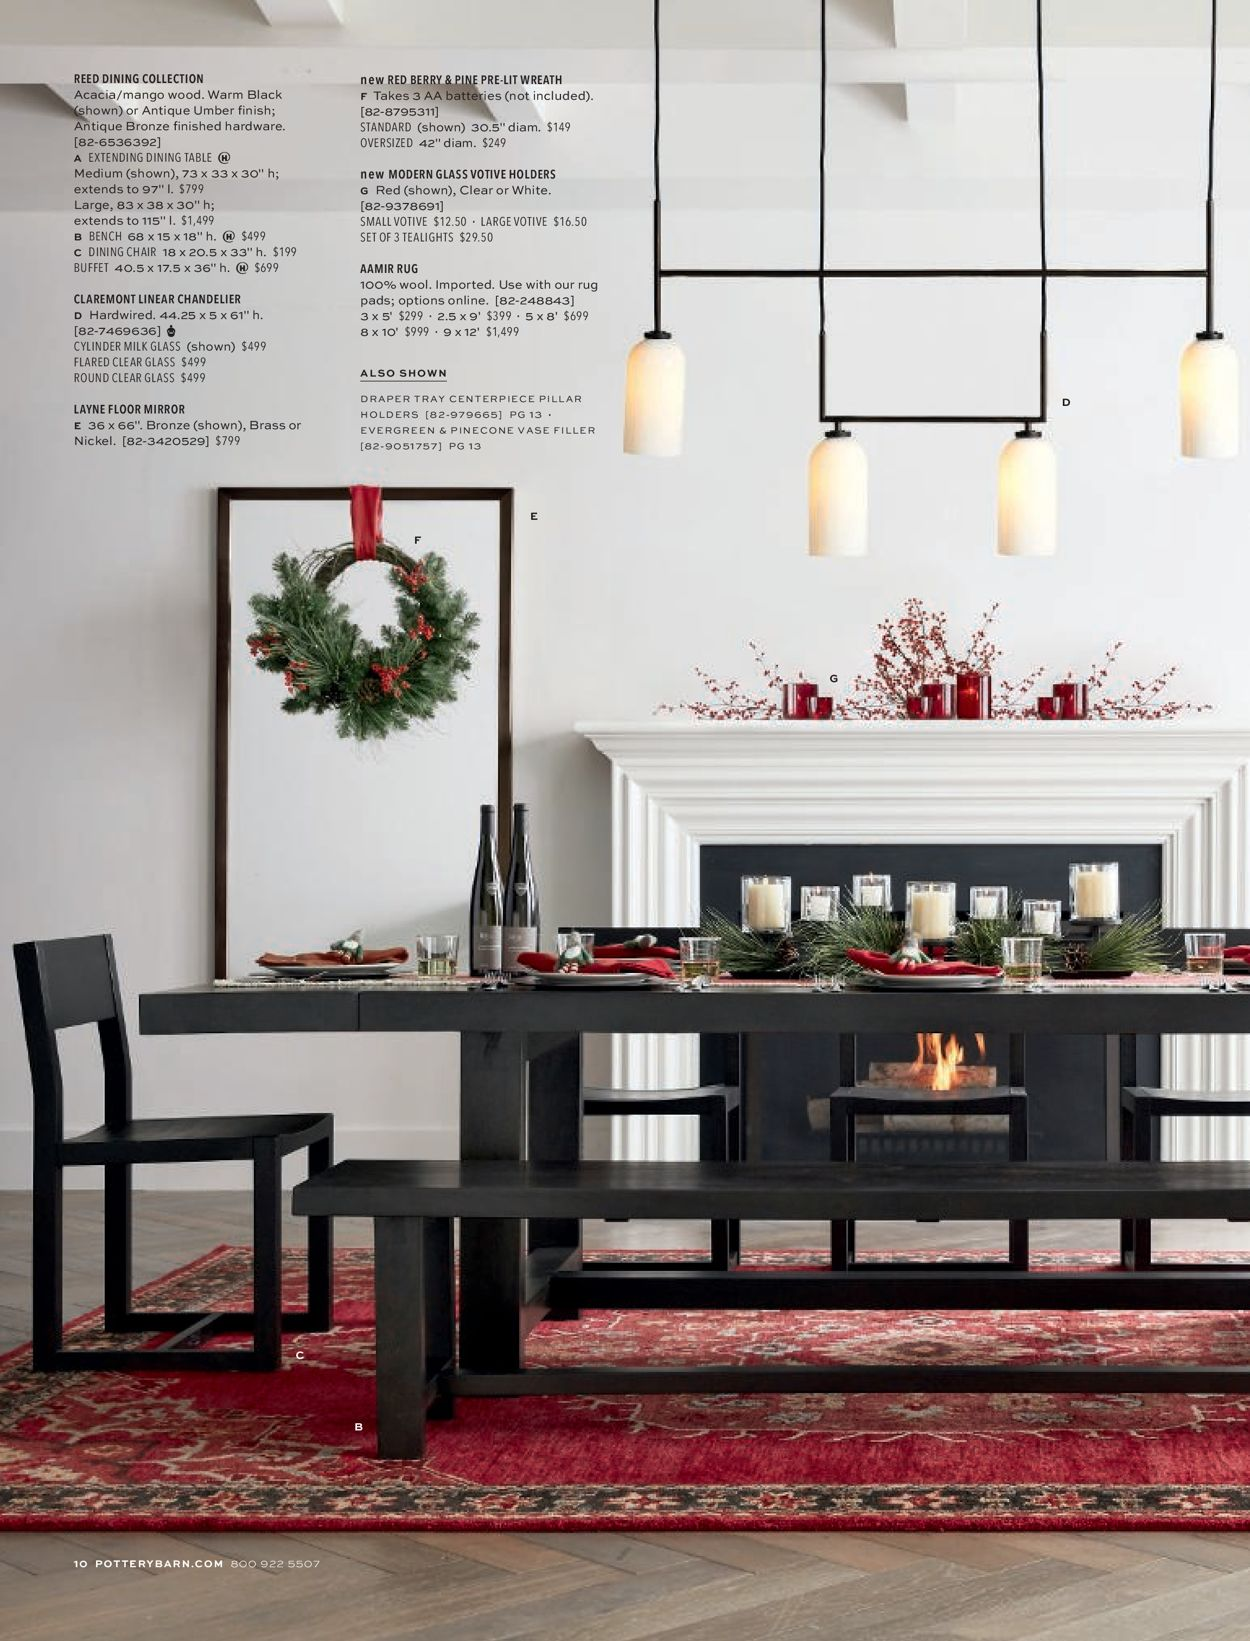 Pottery Barn Holiday 2020 Current Weekly Ad 11 07 12 25 10 Frequent Ads Com